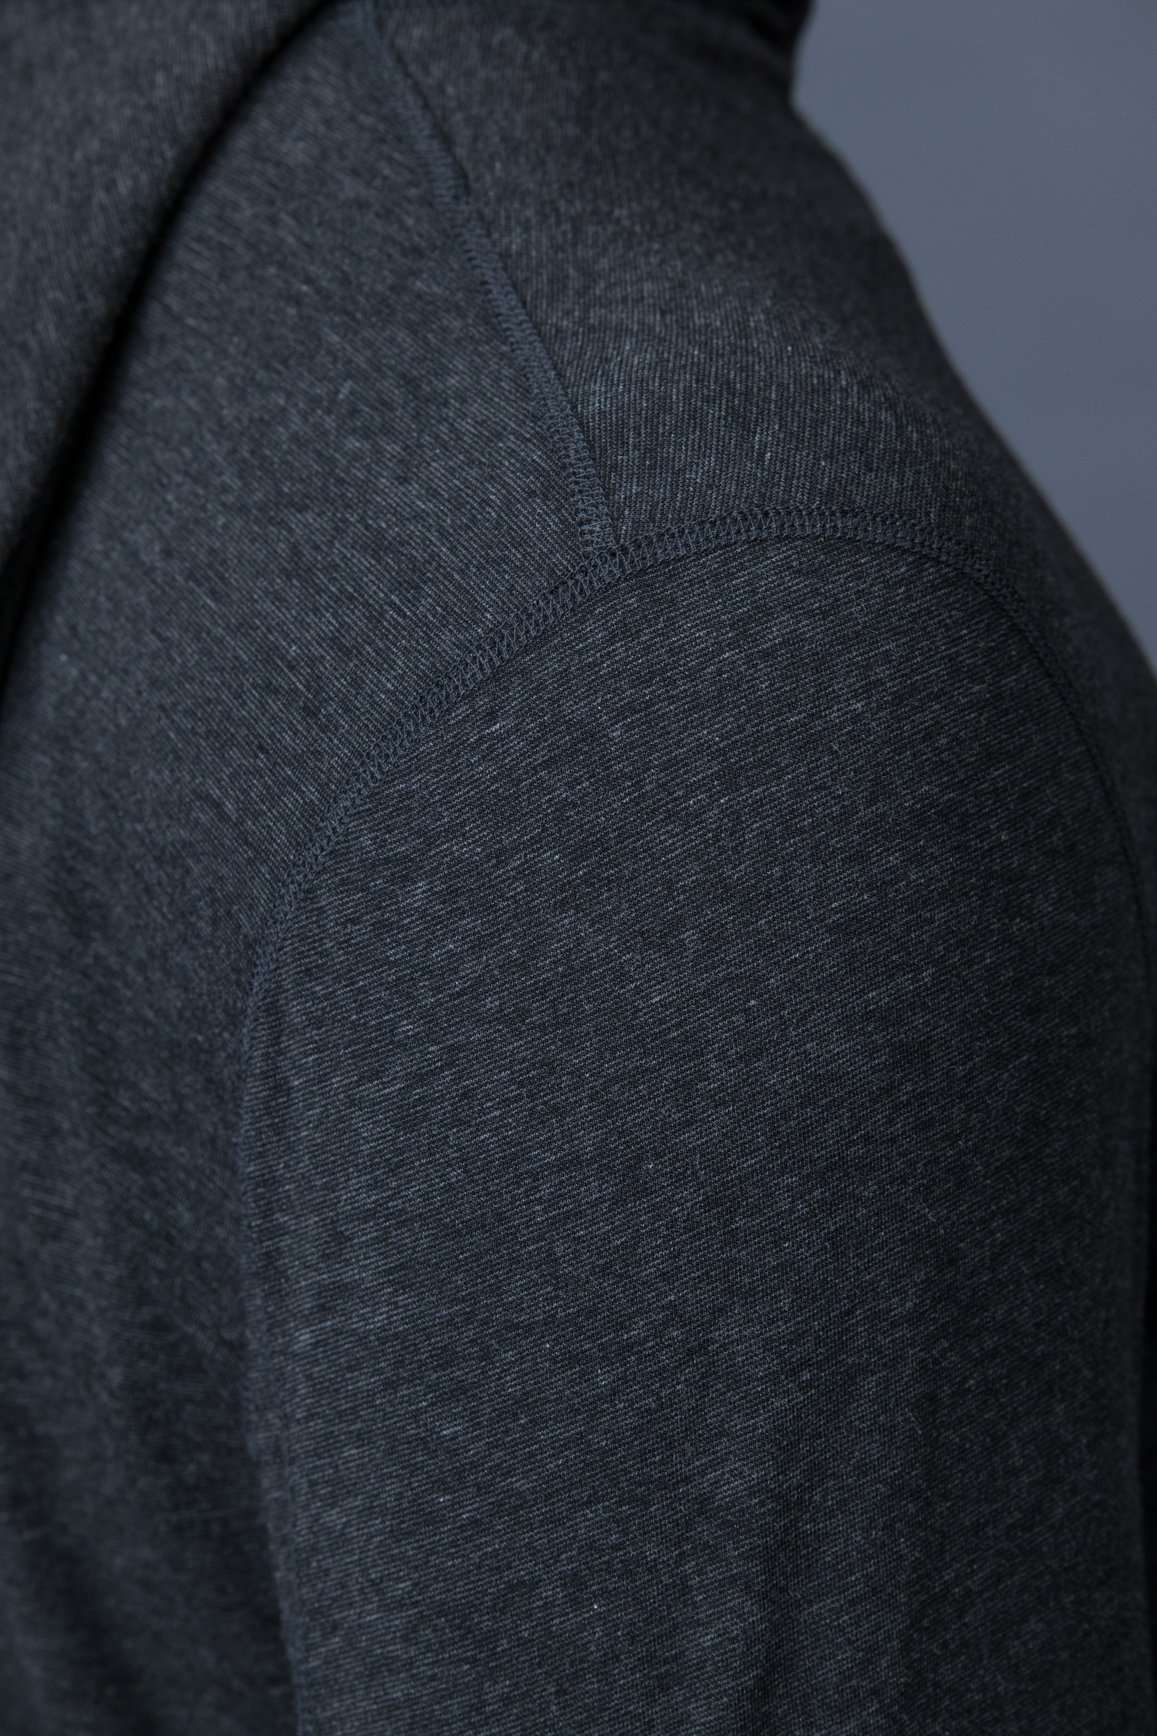 The Navas Lab Vasquez Microstripe long-sleeve hooded shirt detail for tall guys in Charcoal mix. The perfect tall slim shirt for tall and slim guys looking for style and comfort.